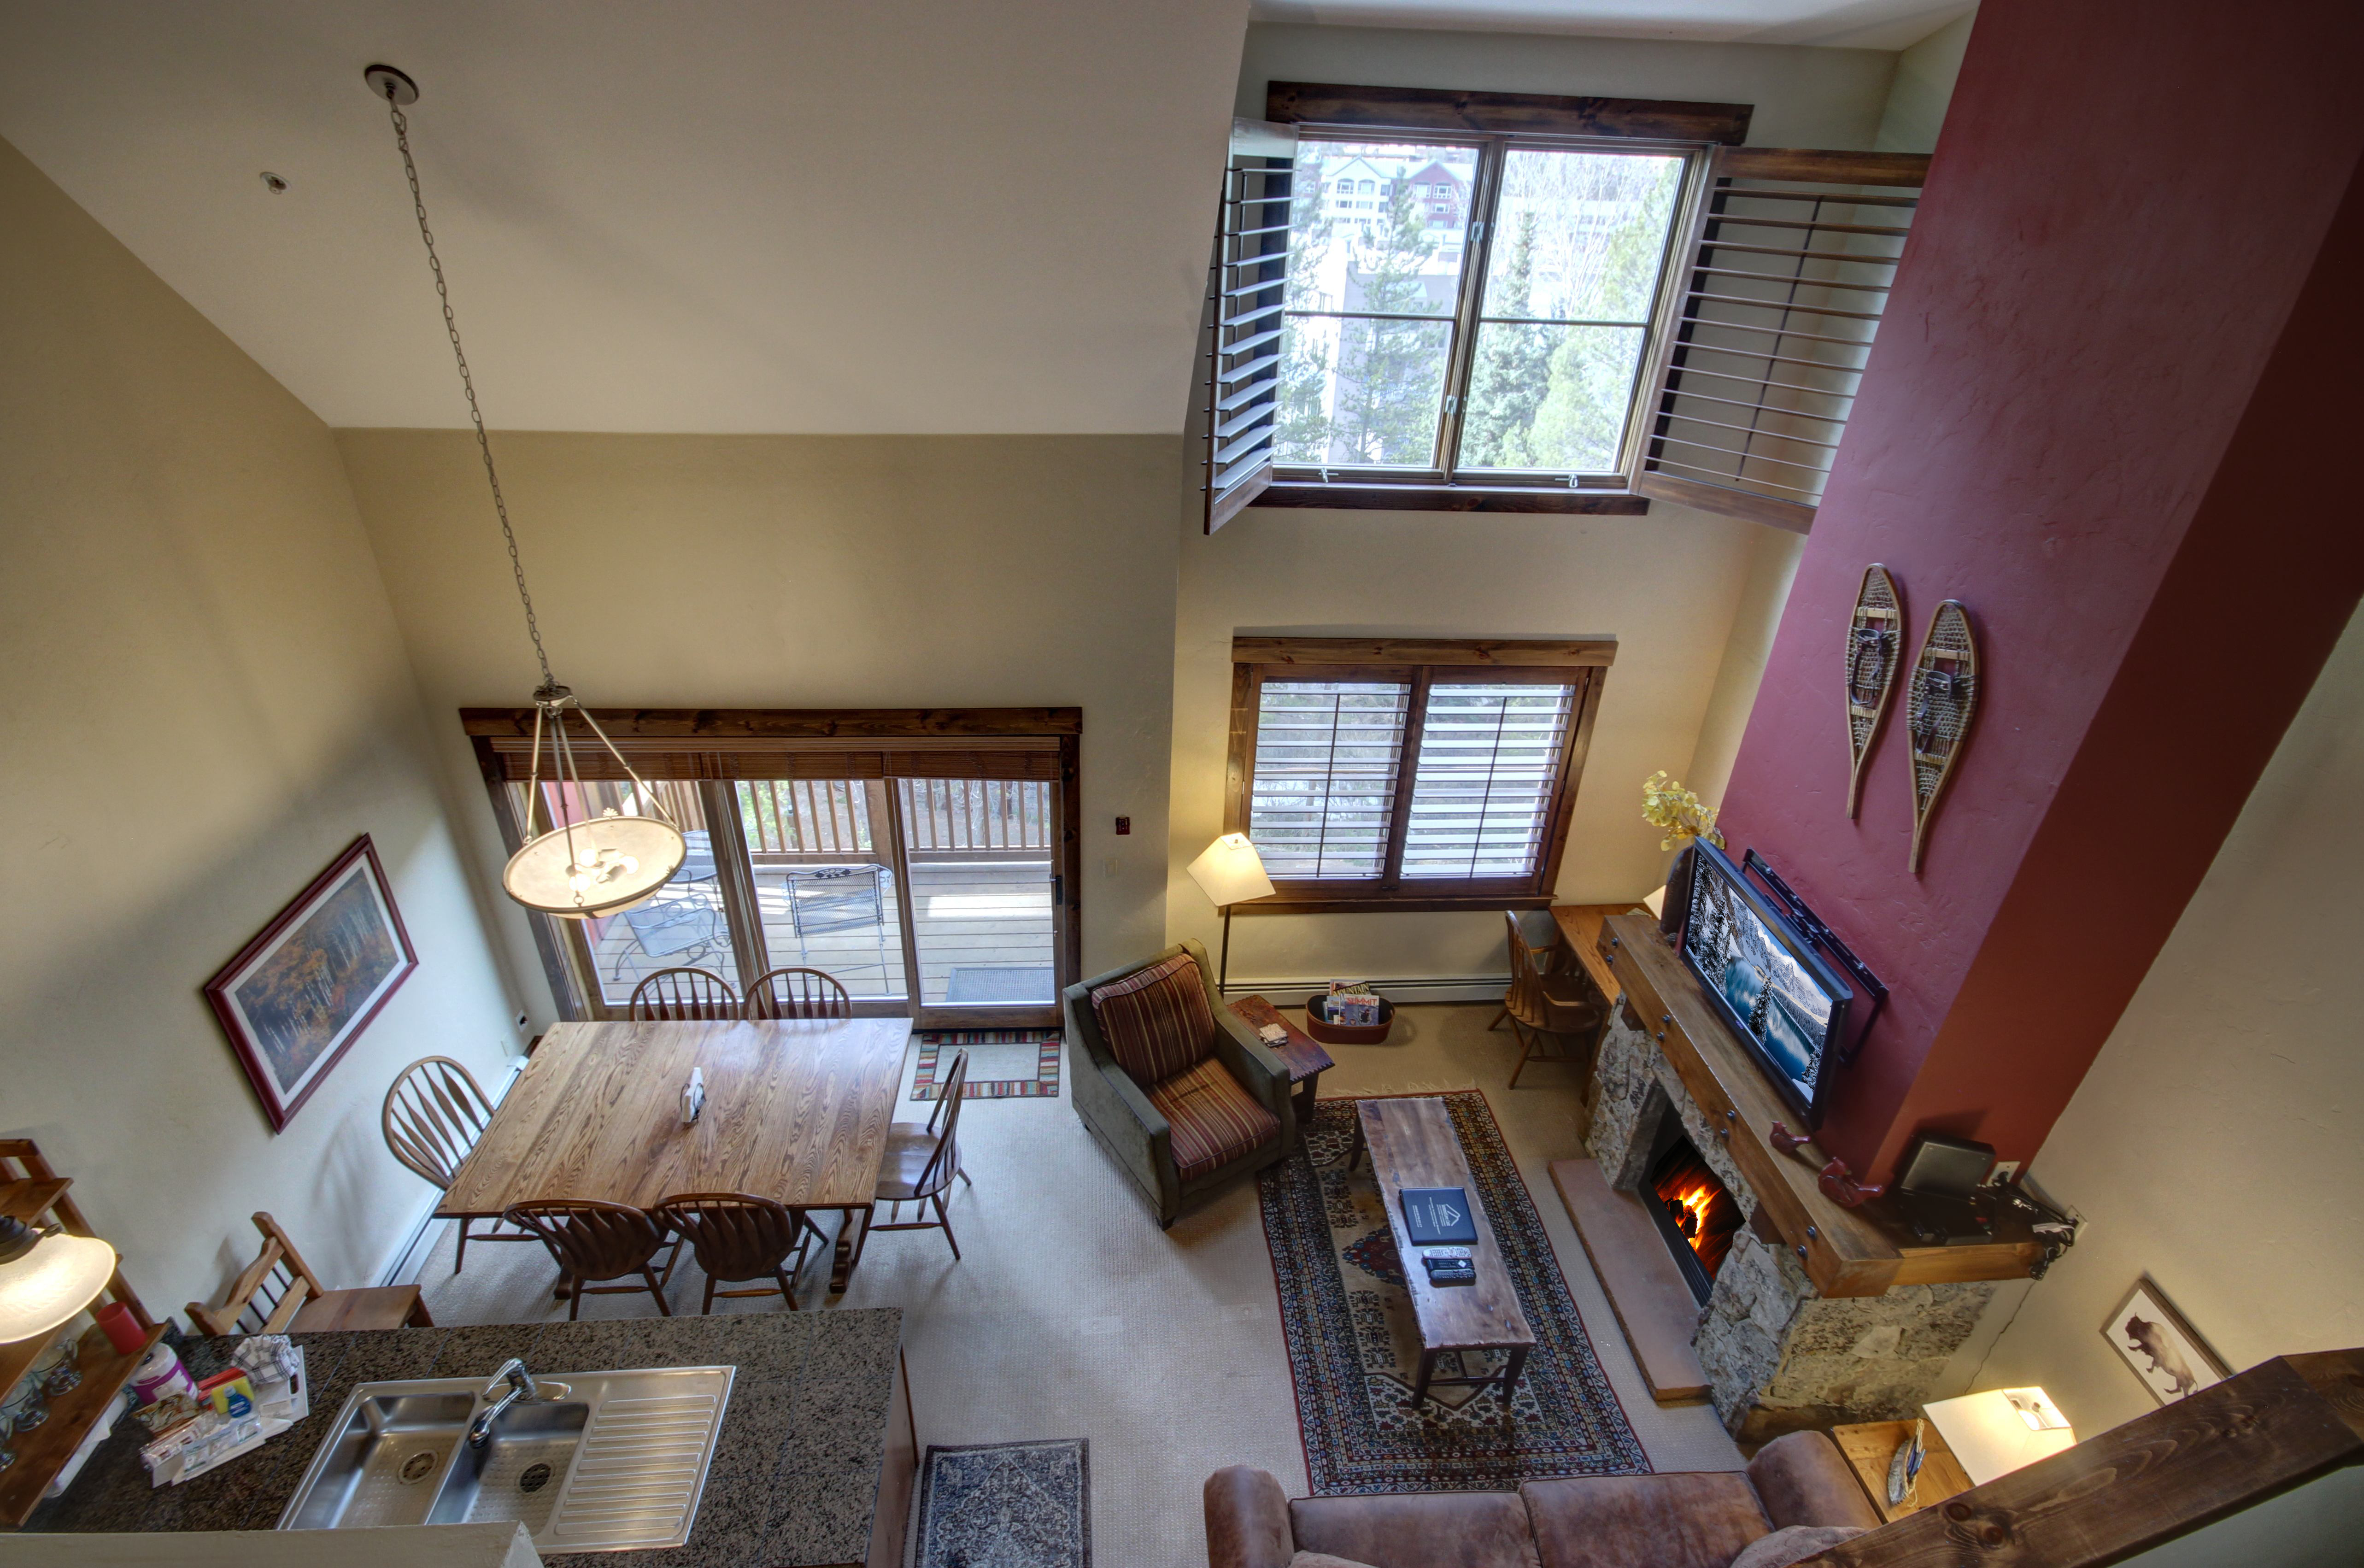 Living room, dining area and kitchen with overlooking balcony